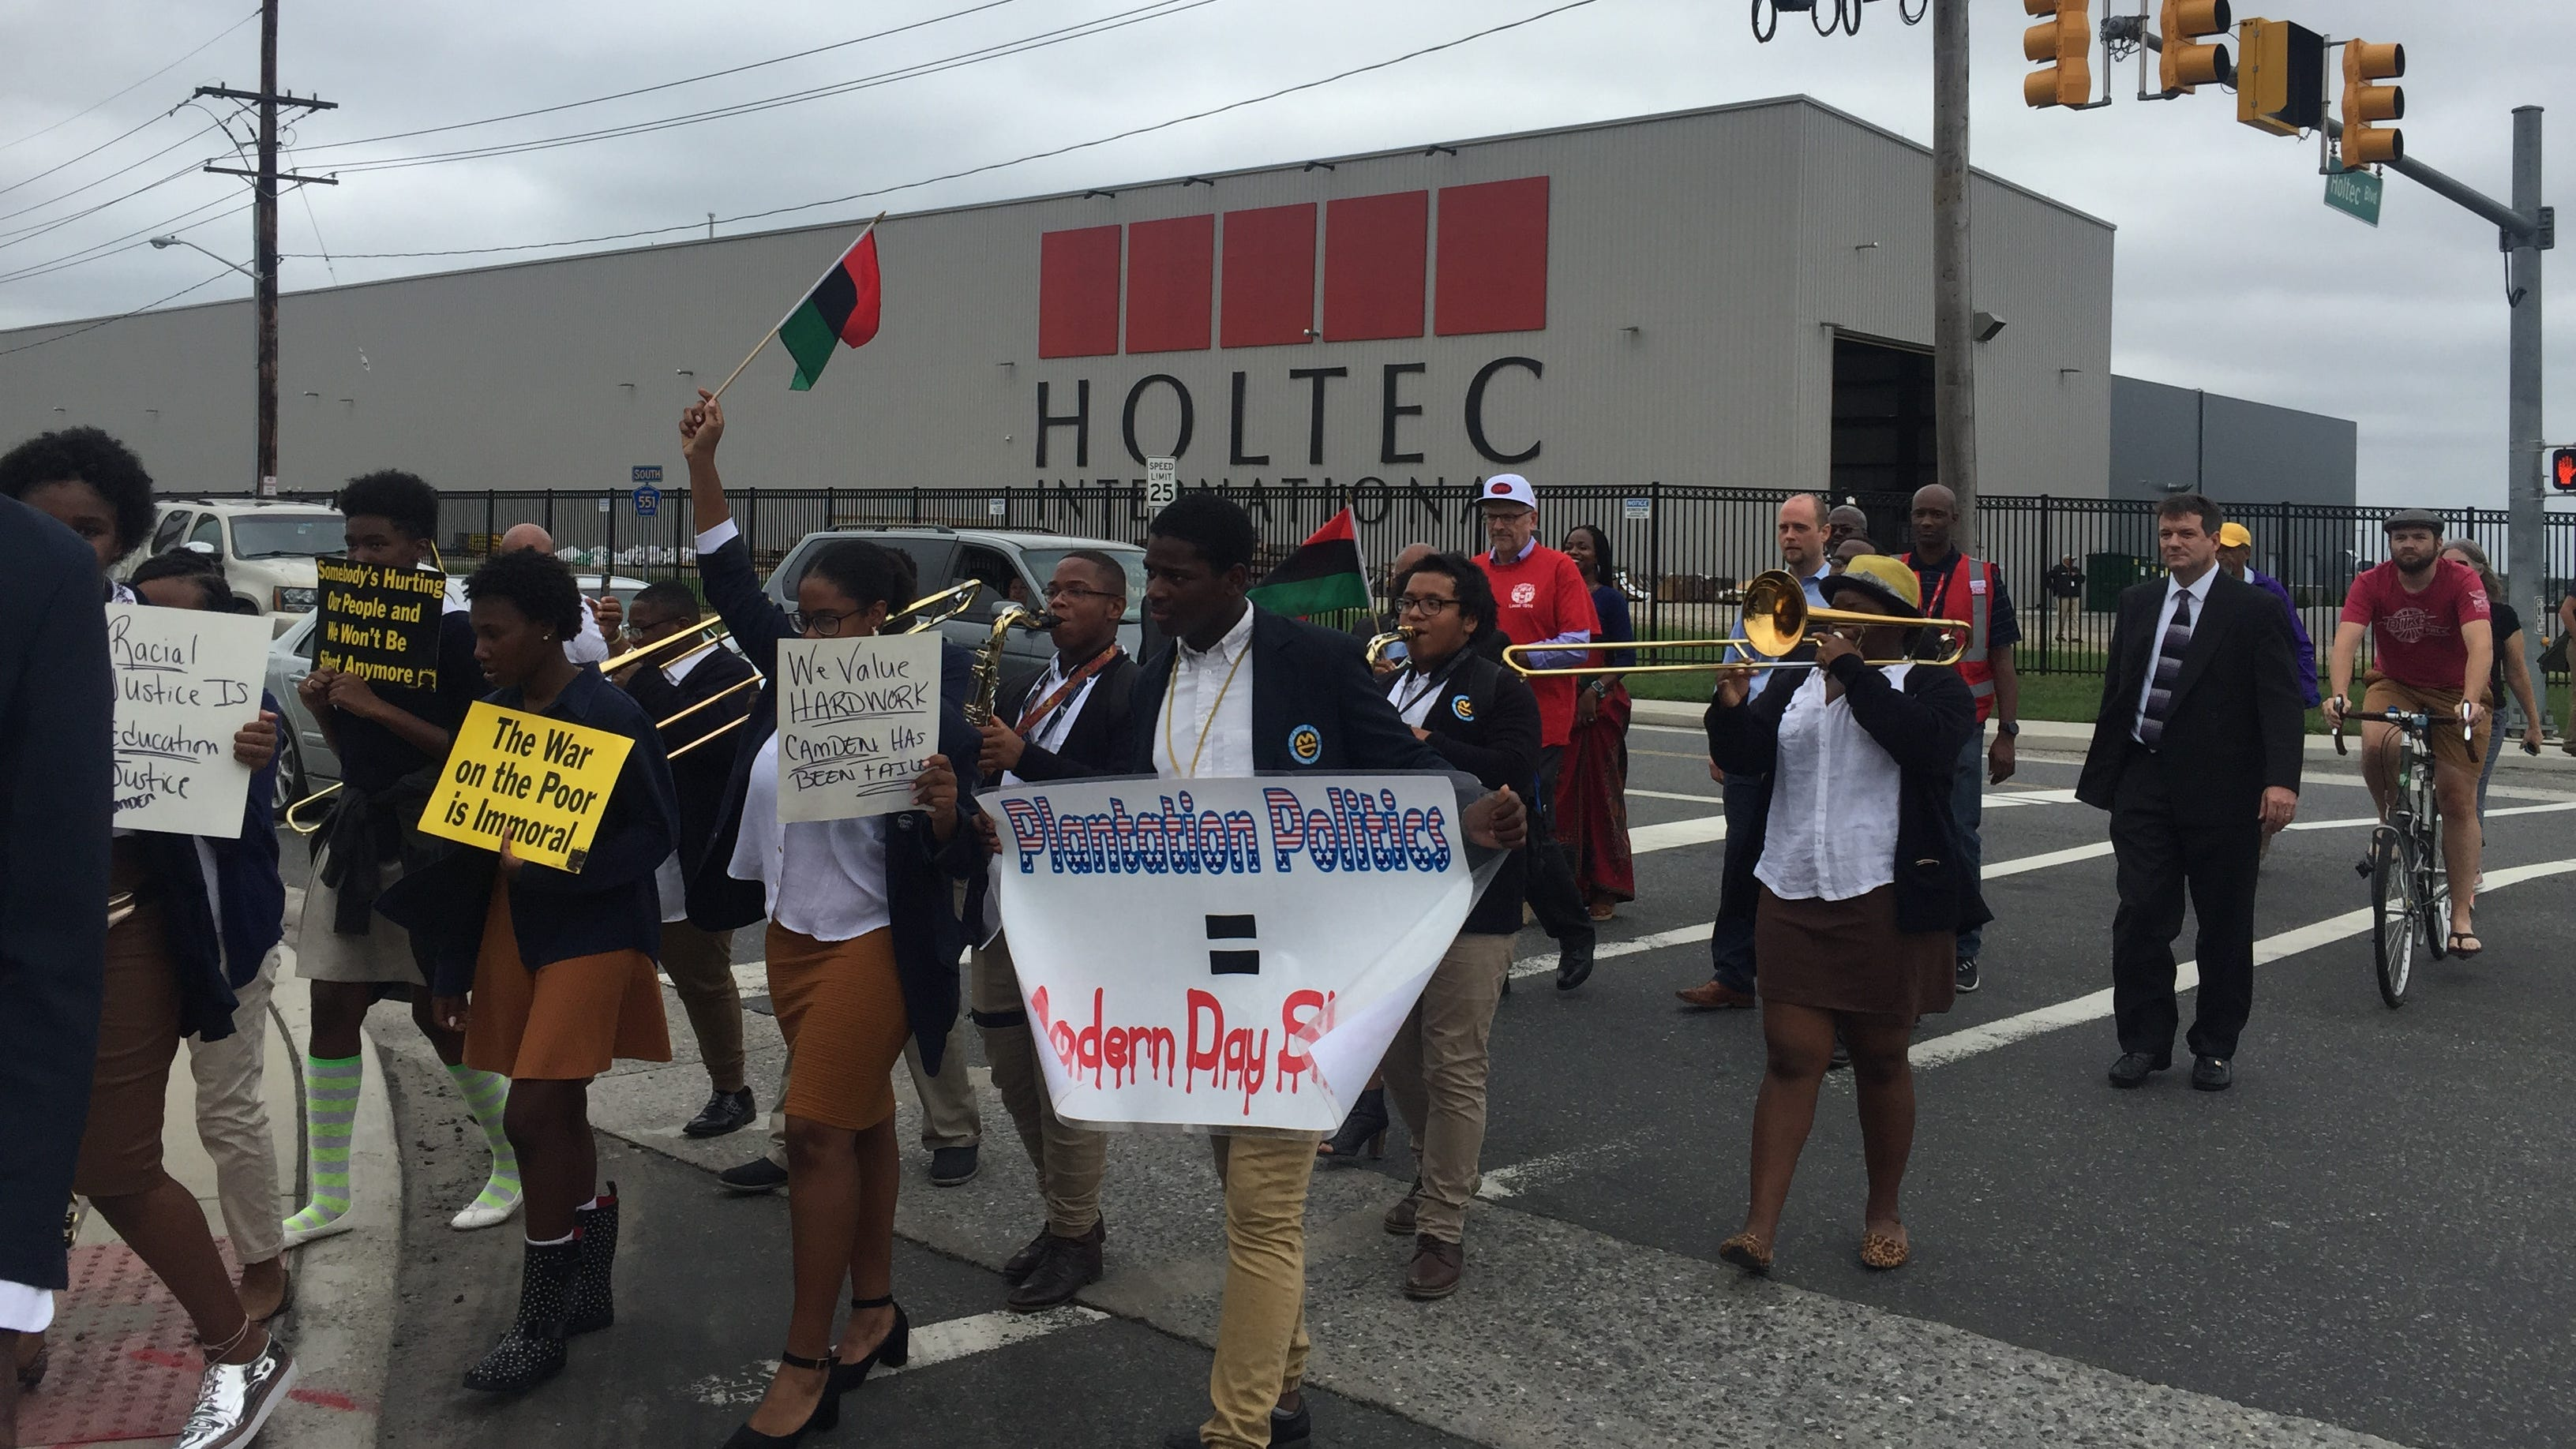 Protests, promises to move forward after Holtec CEO's comments